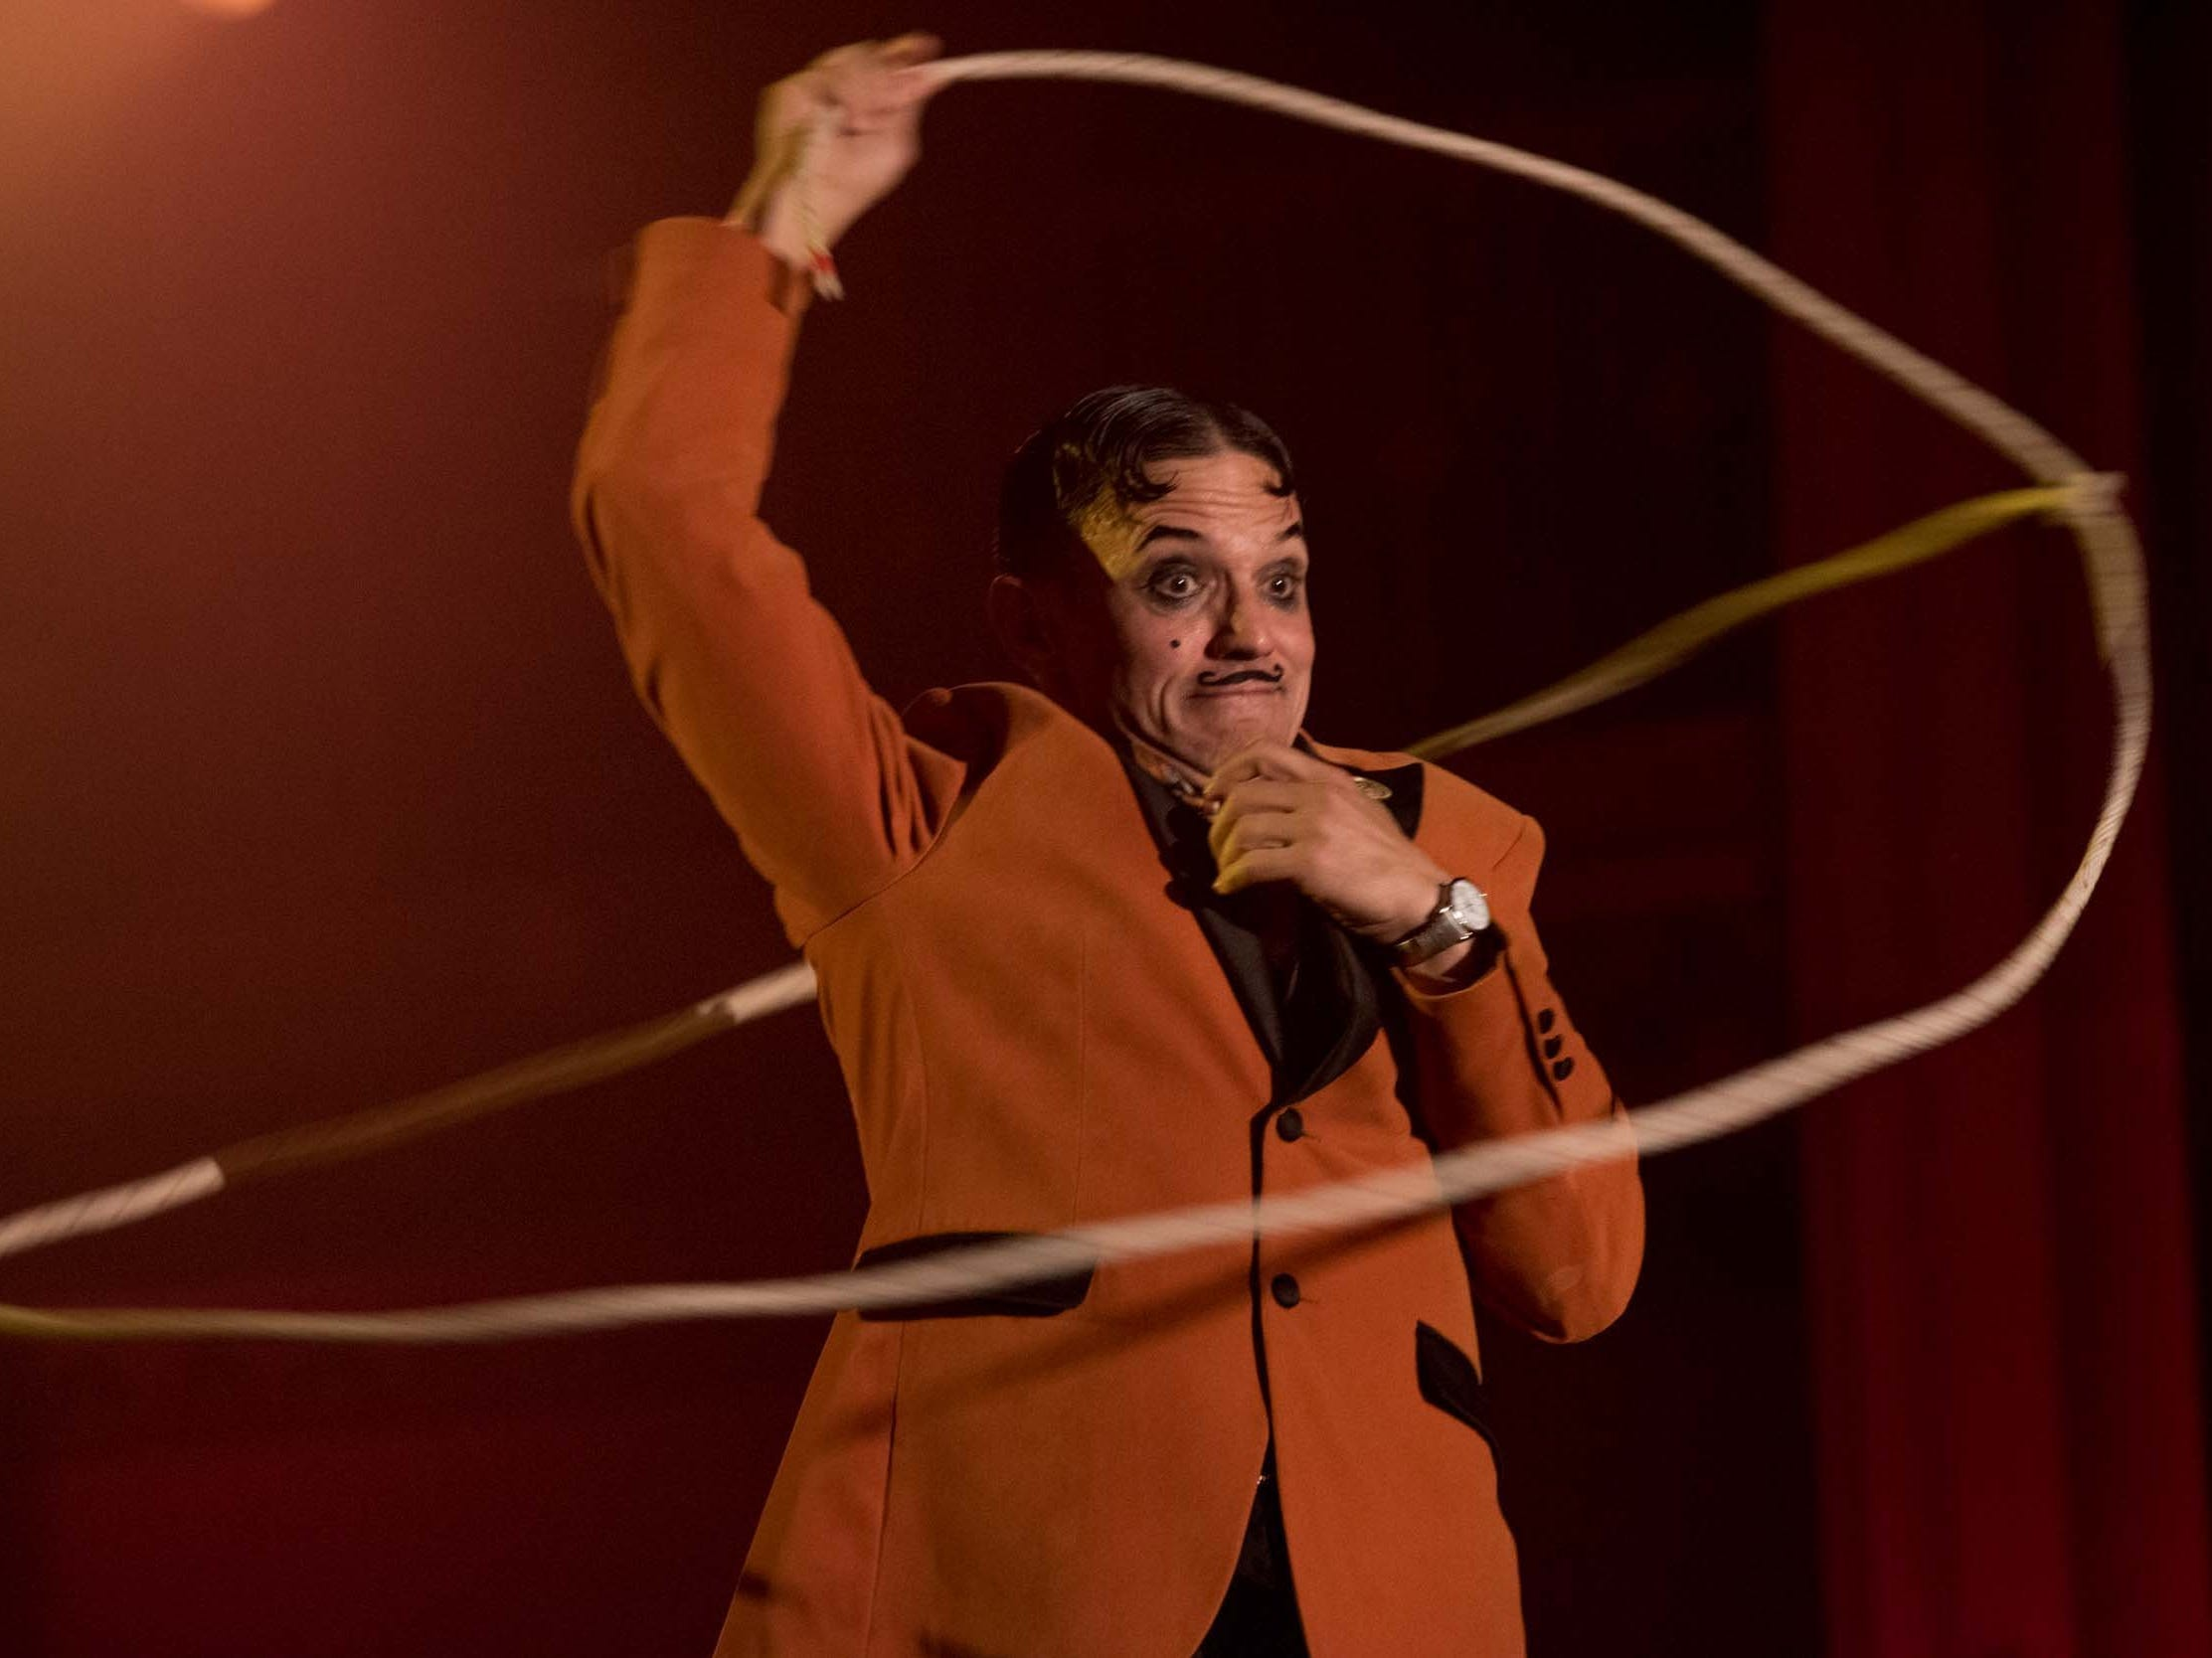 Master of ceremonies The Dirty Devil entertains on the Dirty Devil's peepshow stage during Theatre Bizarre at the Masonic Temple on October 13, 2018.